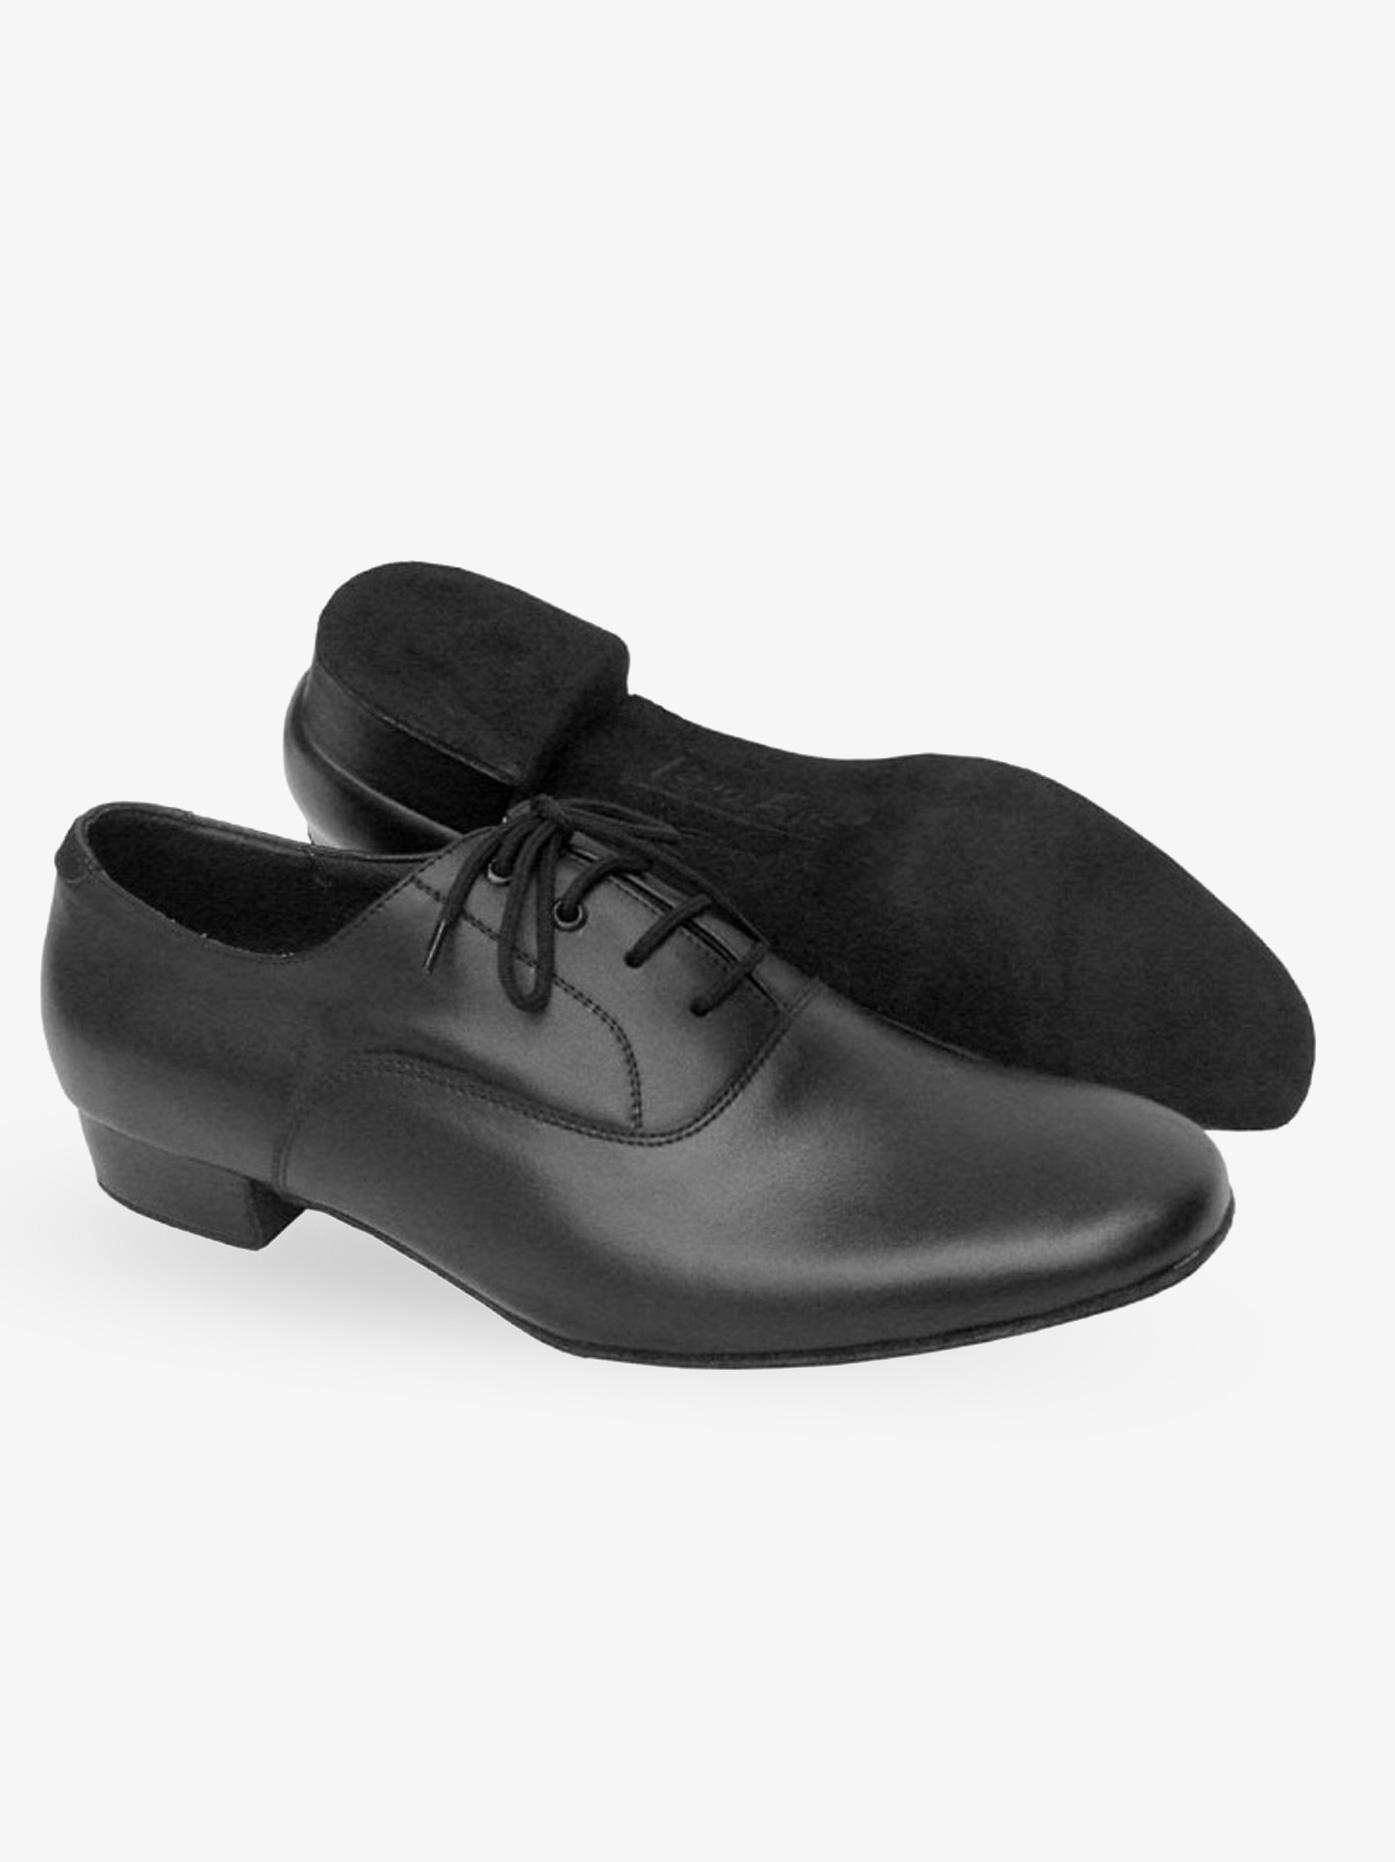 Very Fine Shoes Mens Standard-Signature Series Ballroom Shoes S305